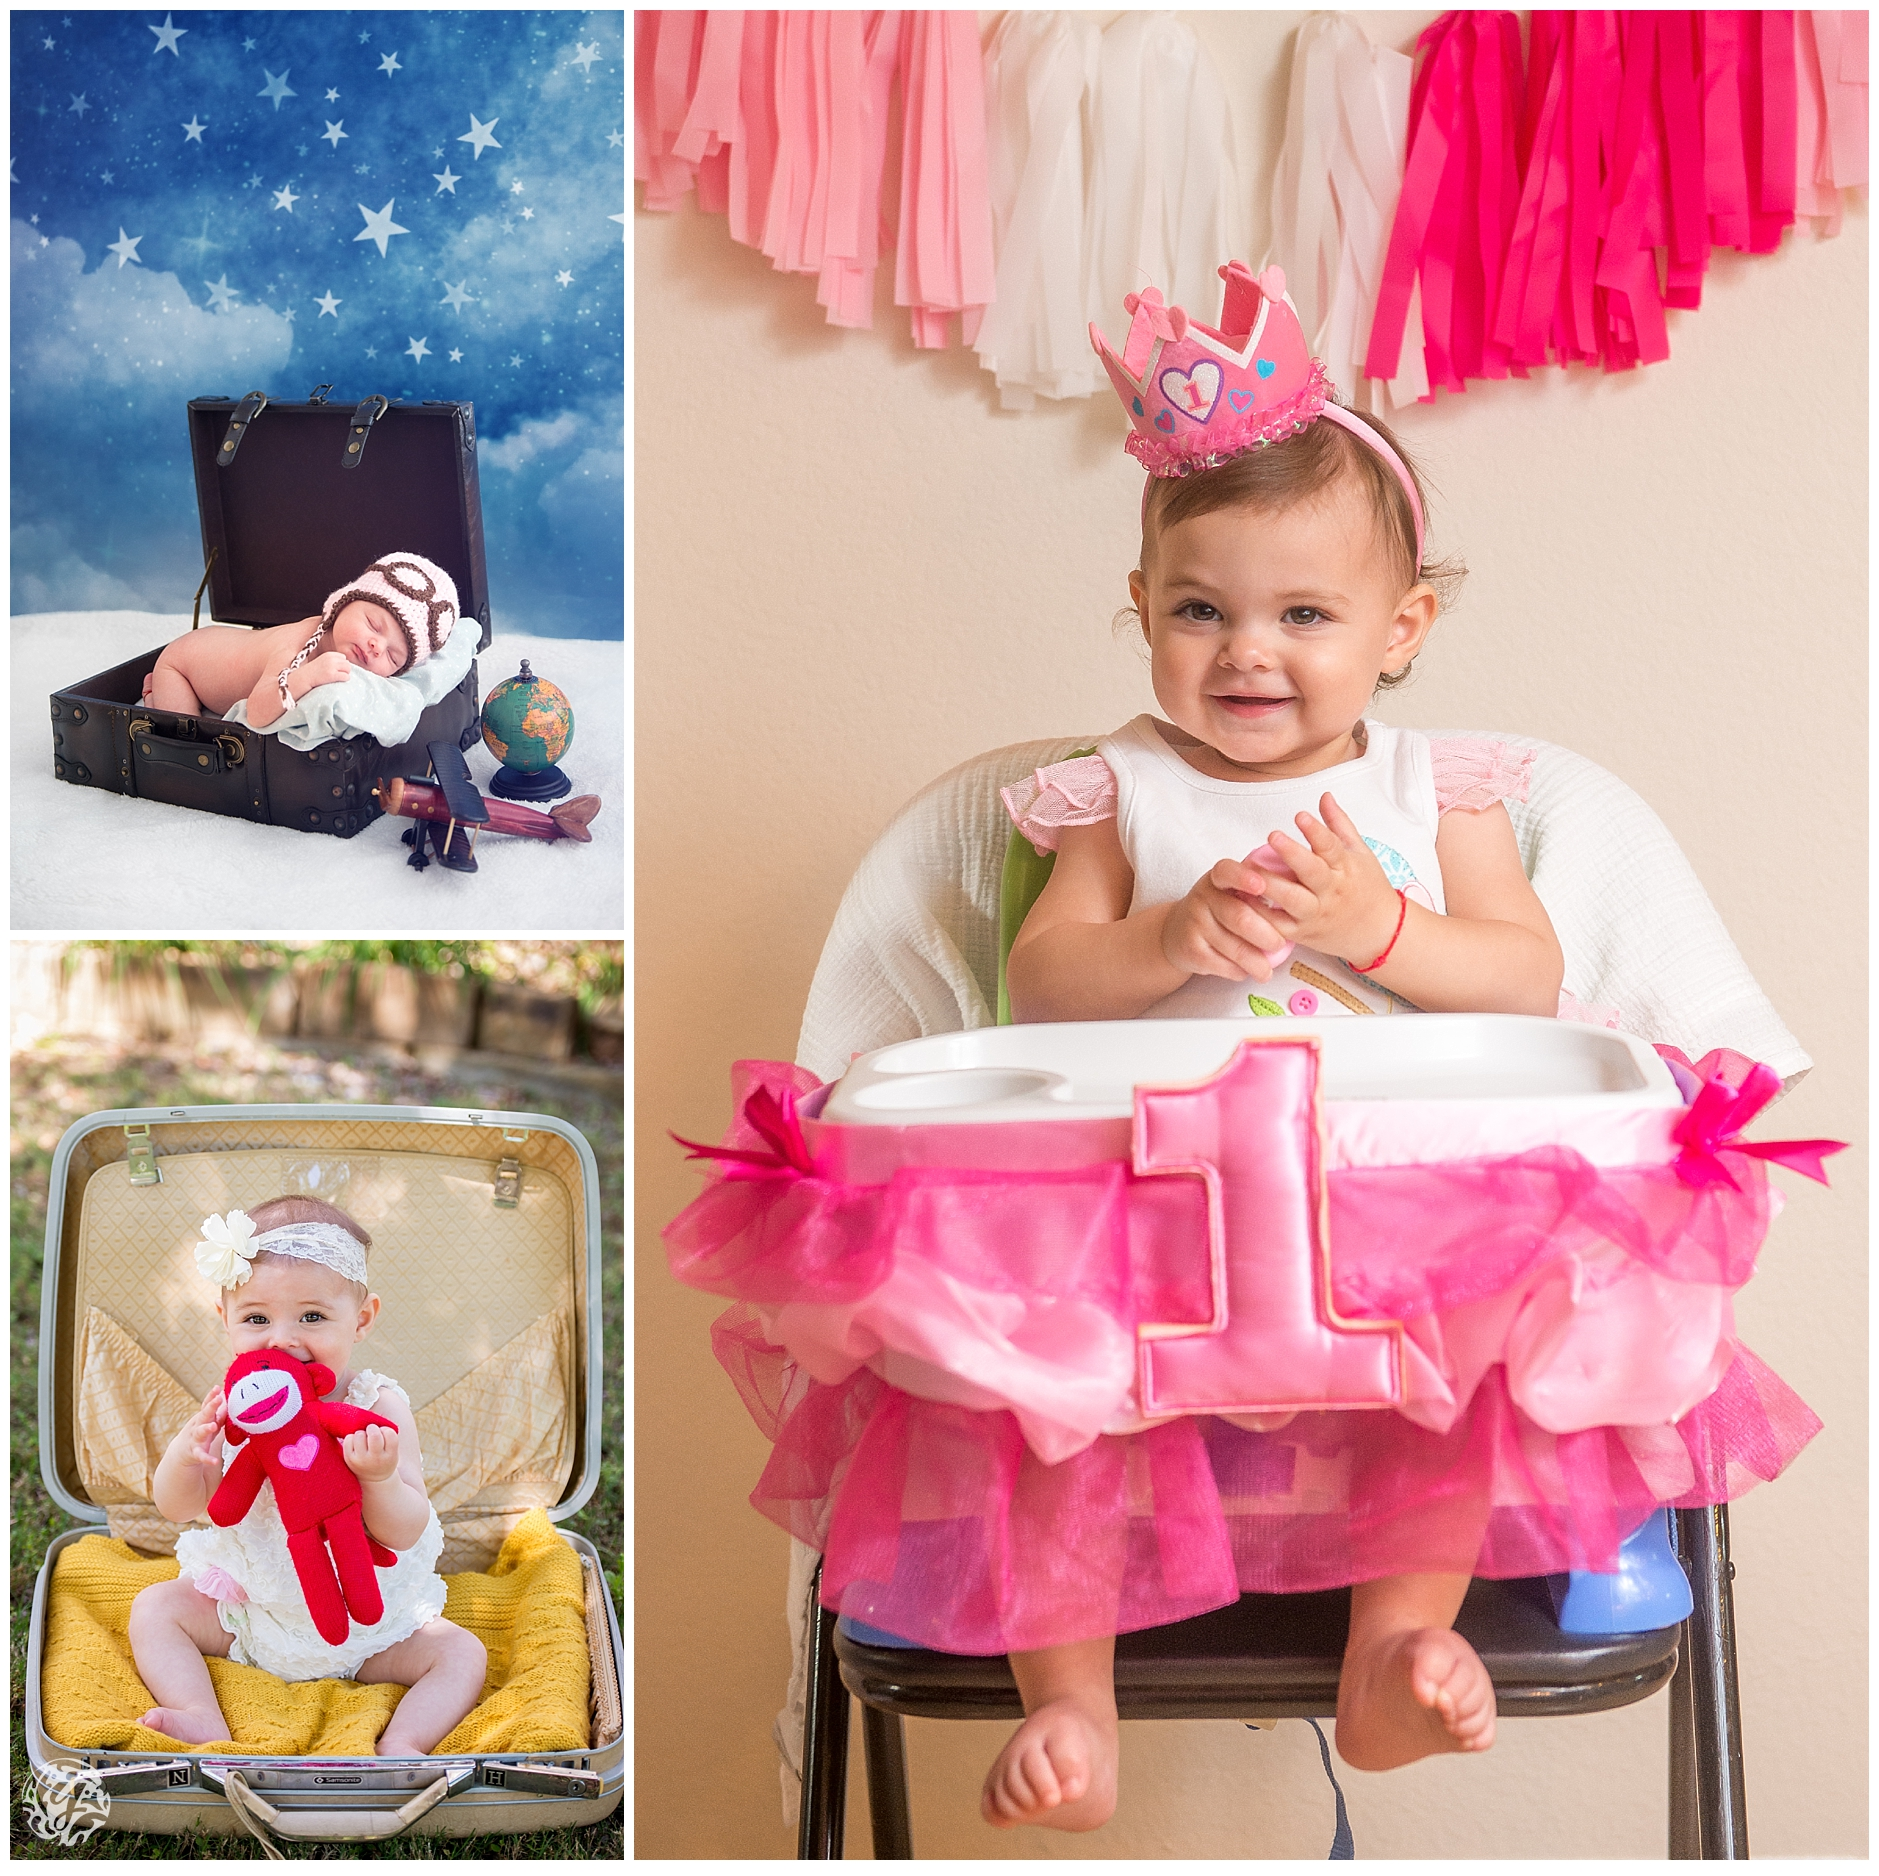 15-Ava-Newborn Photos-7 months - cake smash-18-Edit-1.jpg